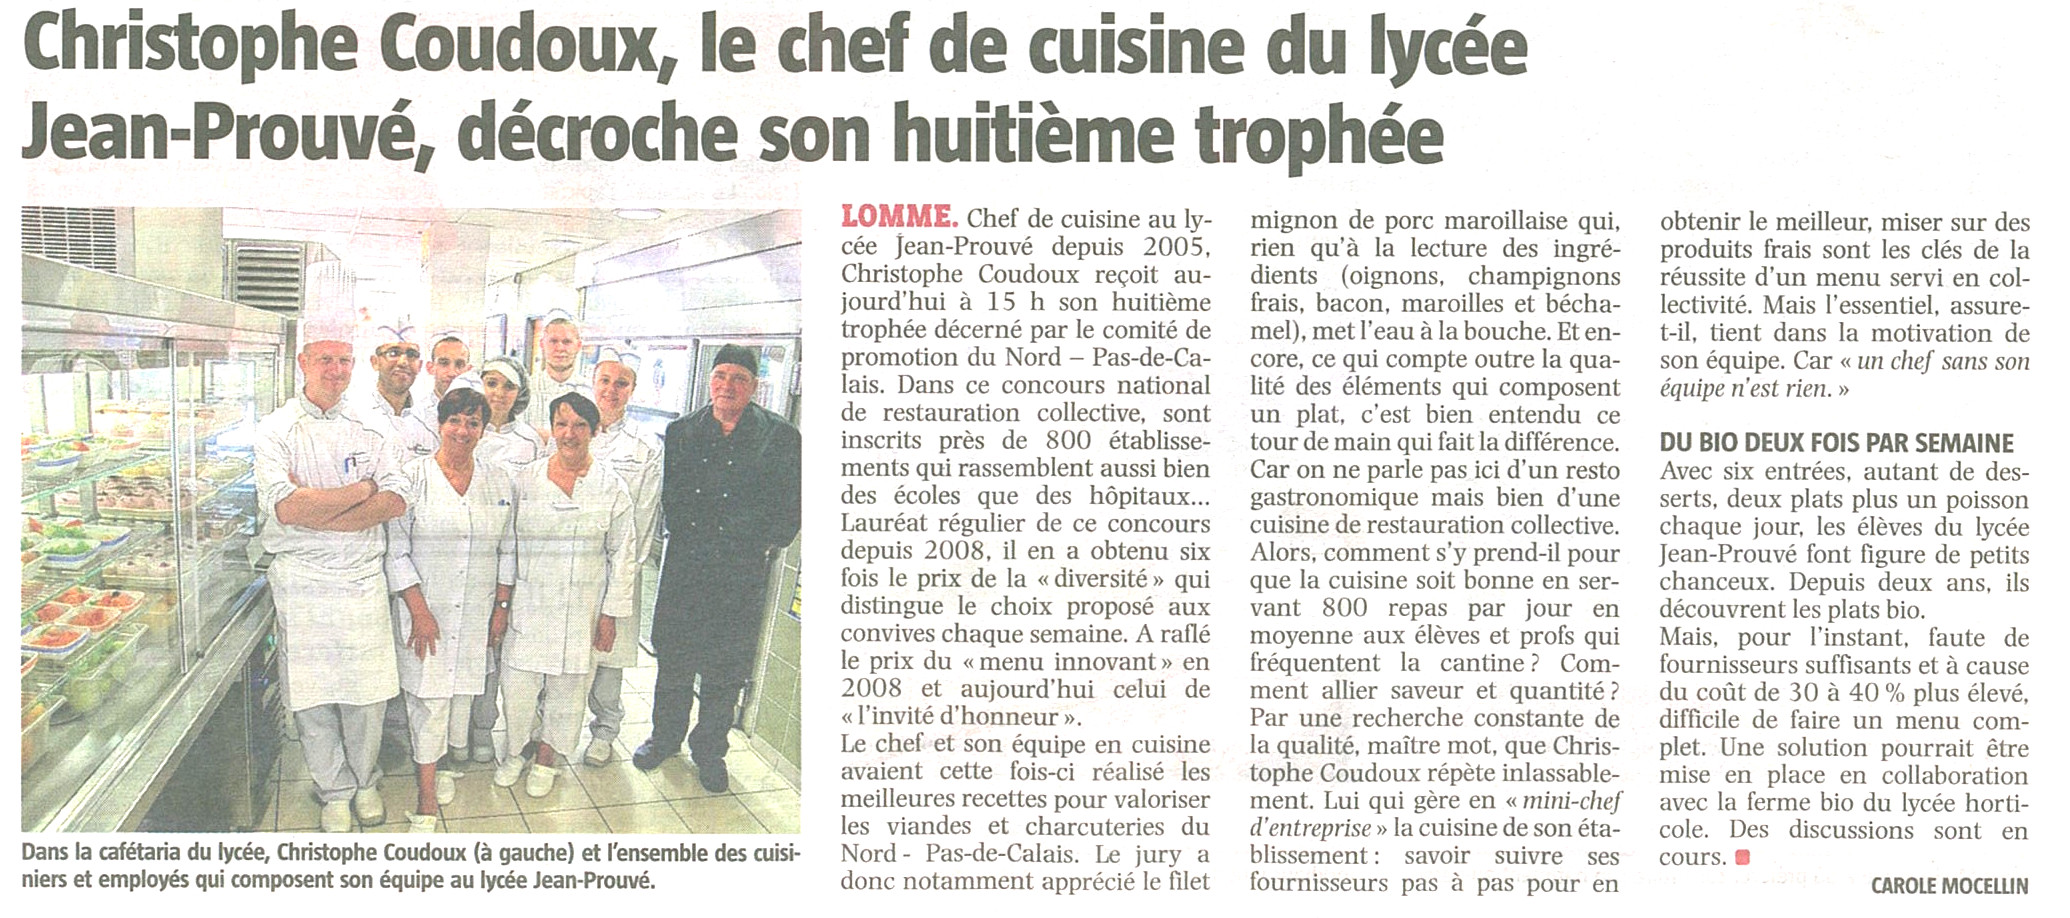 Articles de presse sur le restaurant scolaire bienvenue for Article de restaurant